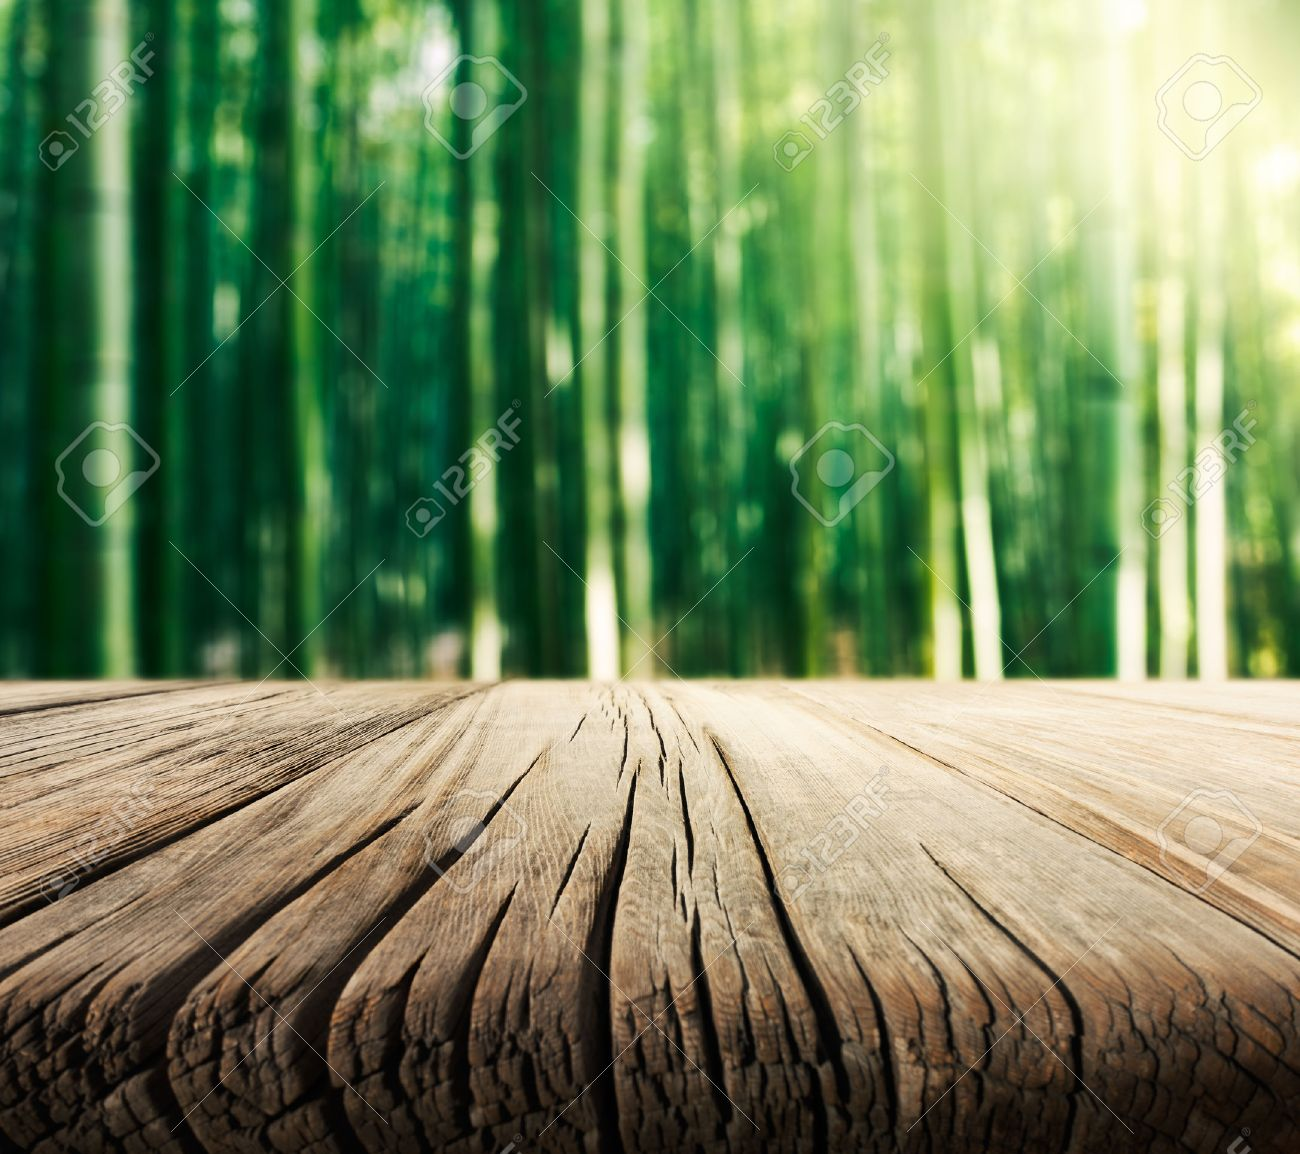 Plain wood table with hipster brick wall background stock photo - Wood Table Perspective Empty Wooden Table With Bamboo Forest Background